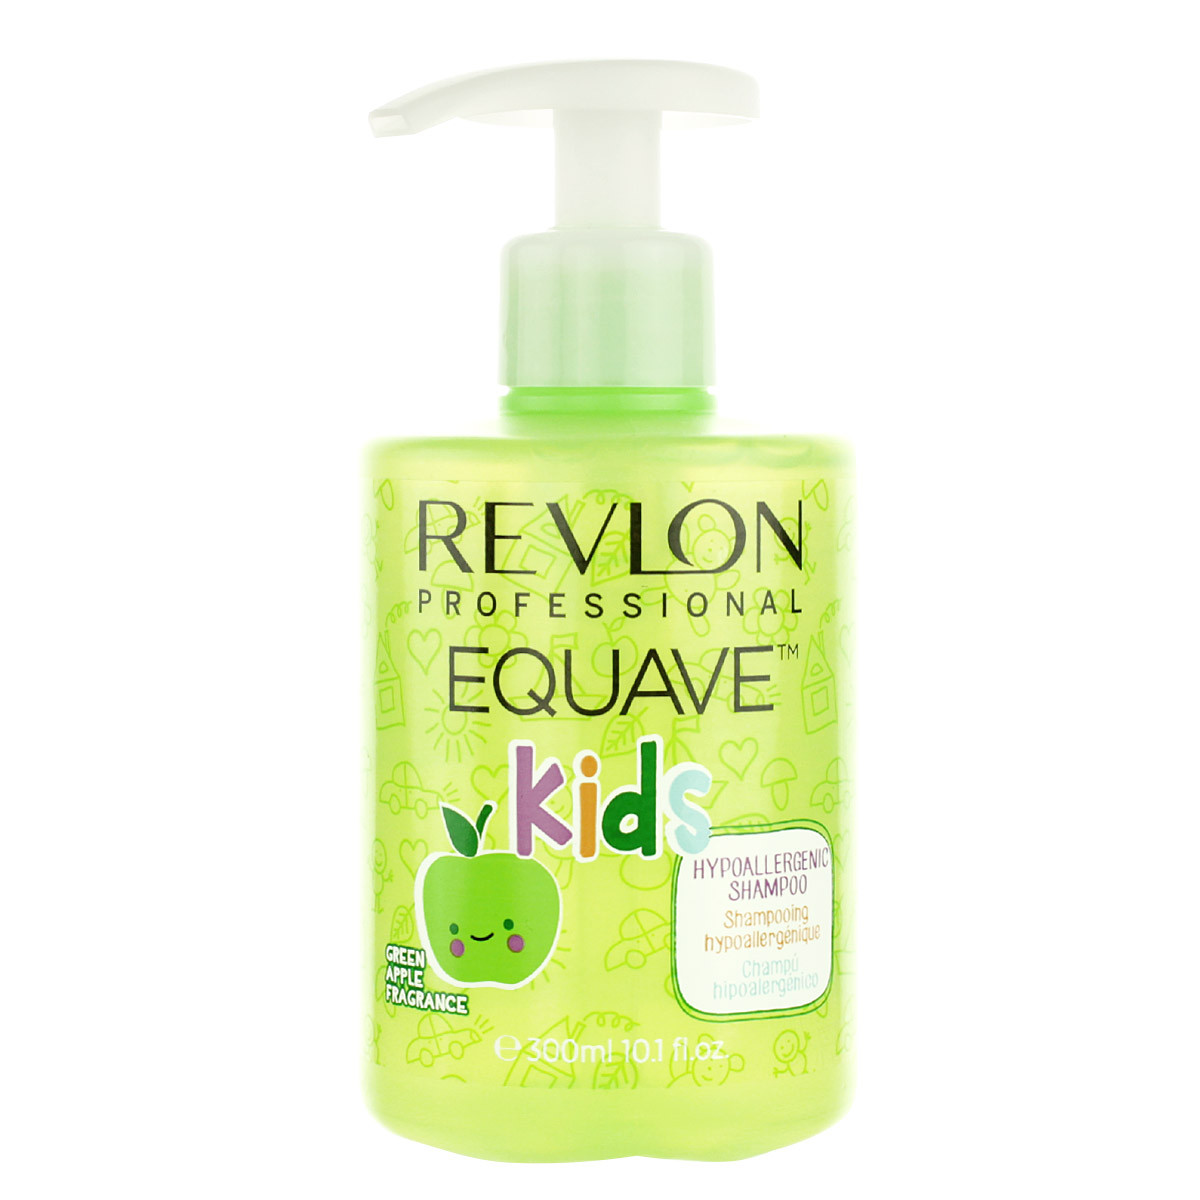 revlon professional equave kids shampoo 2v1 300 ml. Black Bedroom Furniture Sets. Home Design Ideas